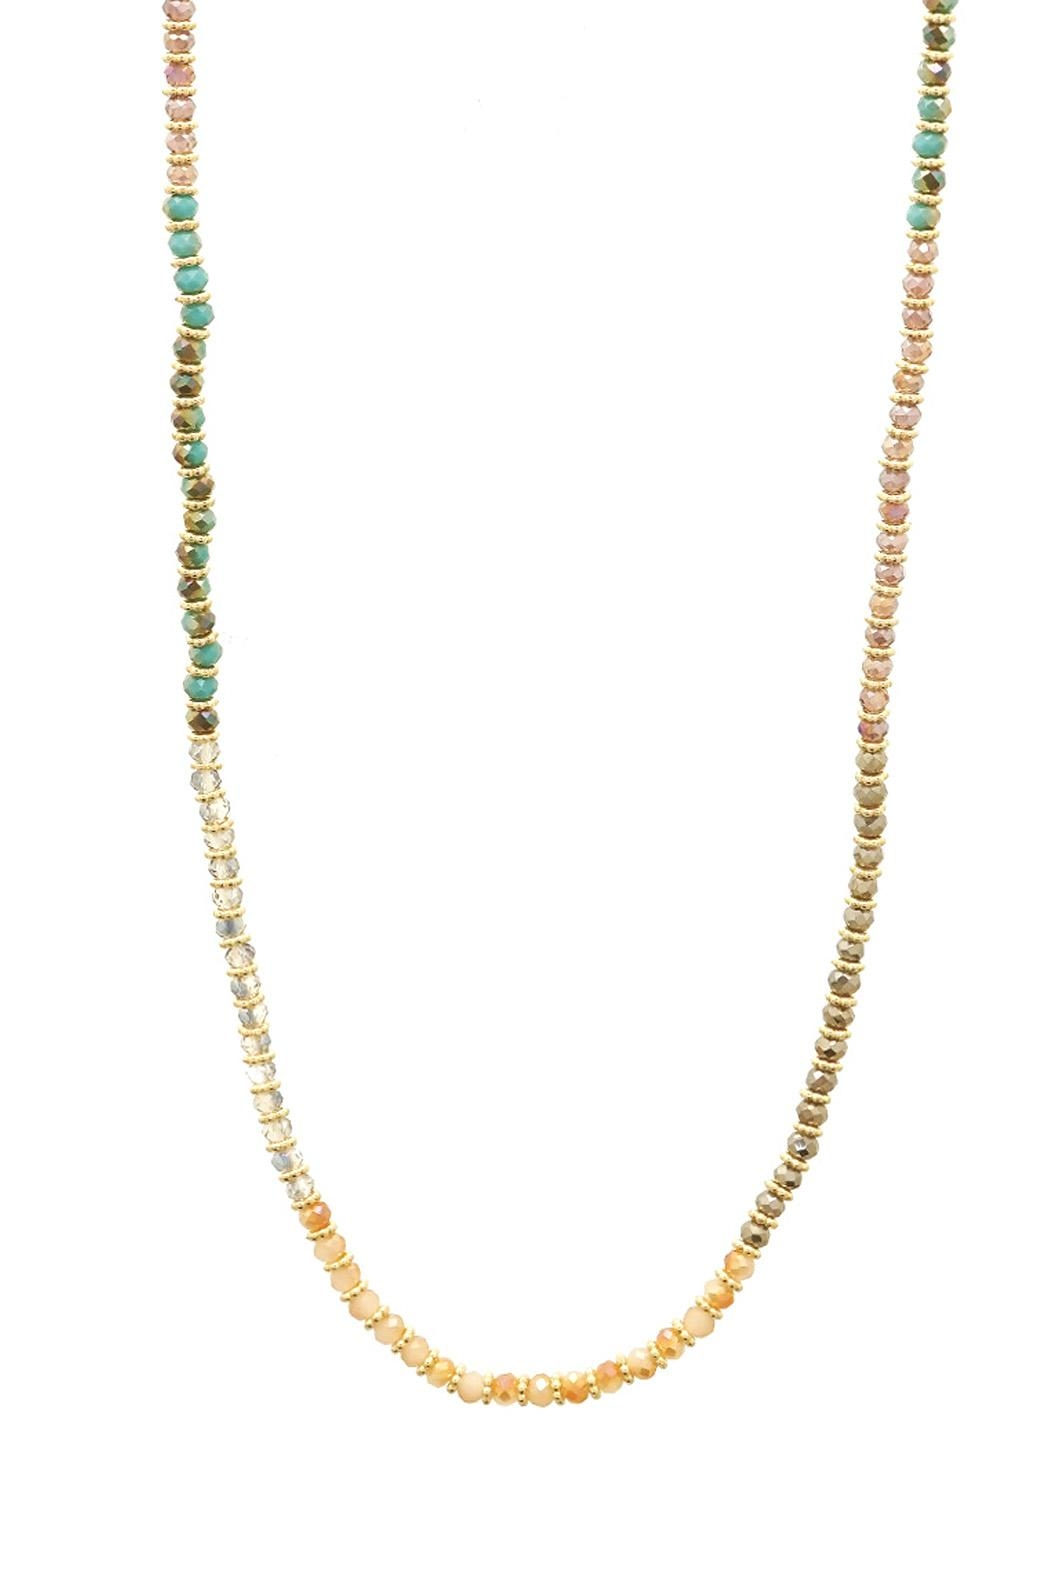 Wild Lilies Jewelry  Long Beaded Necklace - Main Image